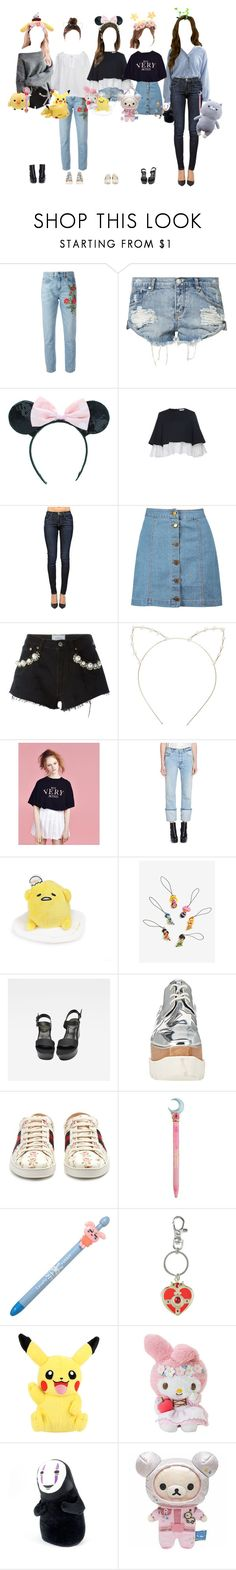 """Promise fansign in Seoul"" by promise-official ❤ liked on Polyvore featuring Gucci, OneTeaspoon, Adeam, Boohoo, Forte Couture, Cara, Lazy Oaf, Alexander McQueen, G-Star Raw and STELLA McCARTNEY"